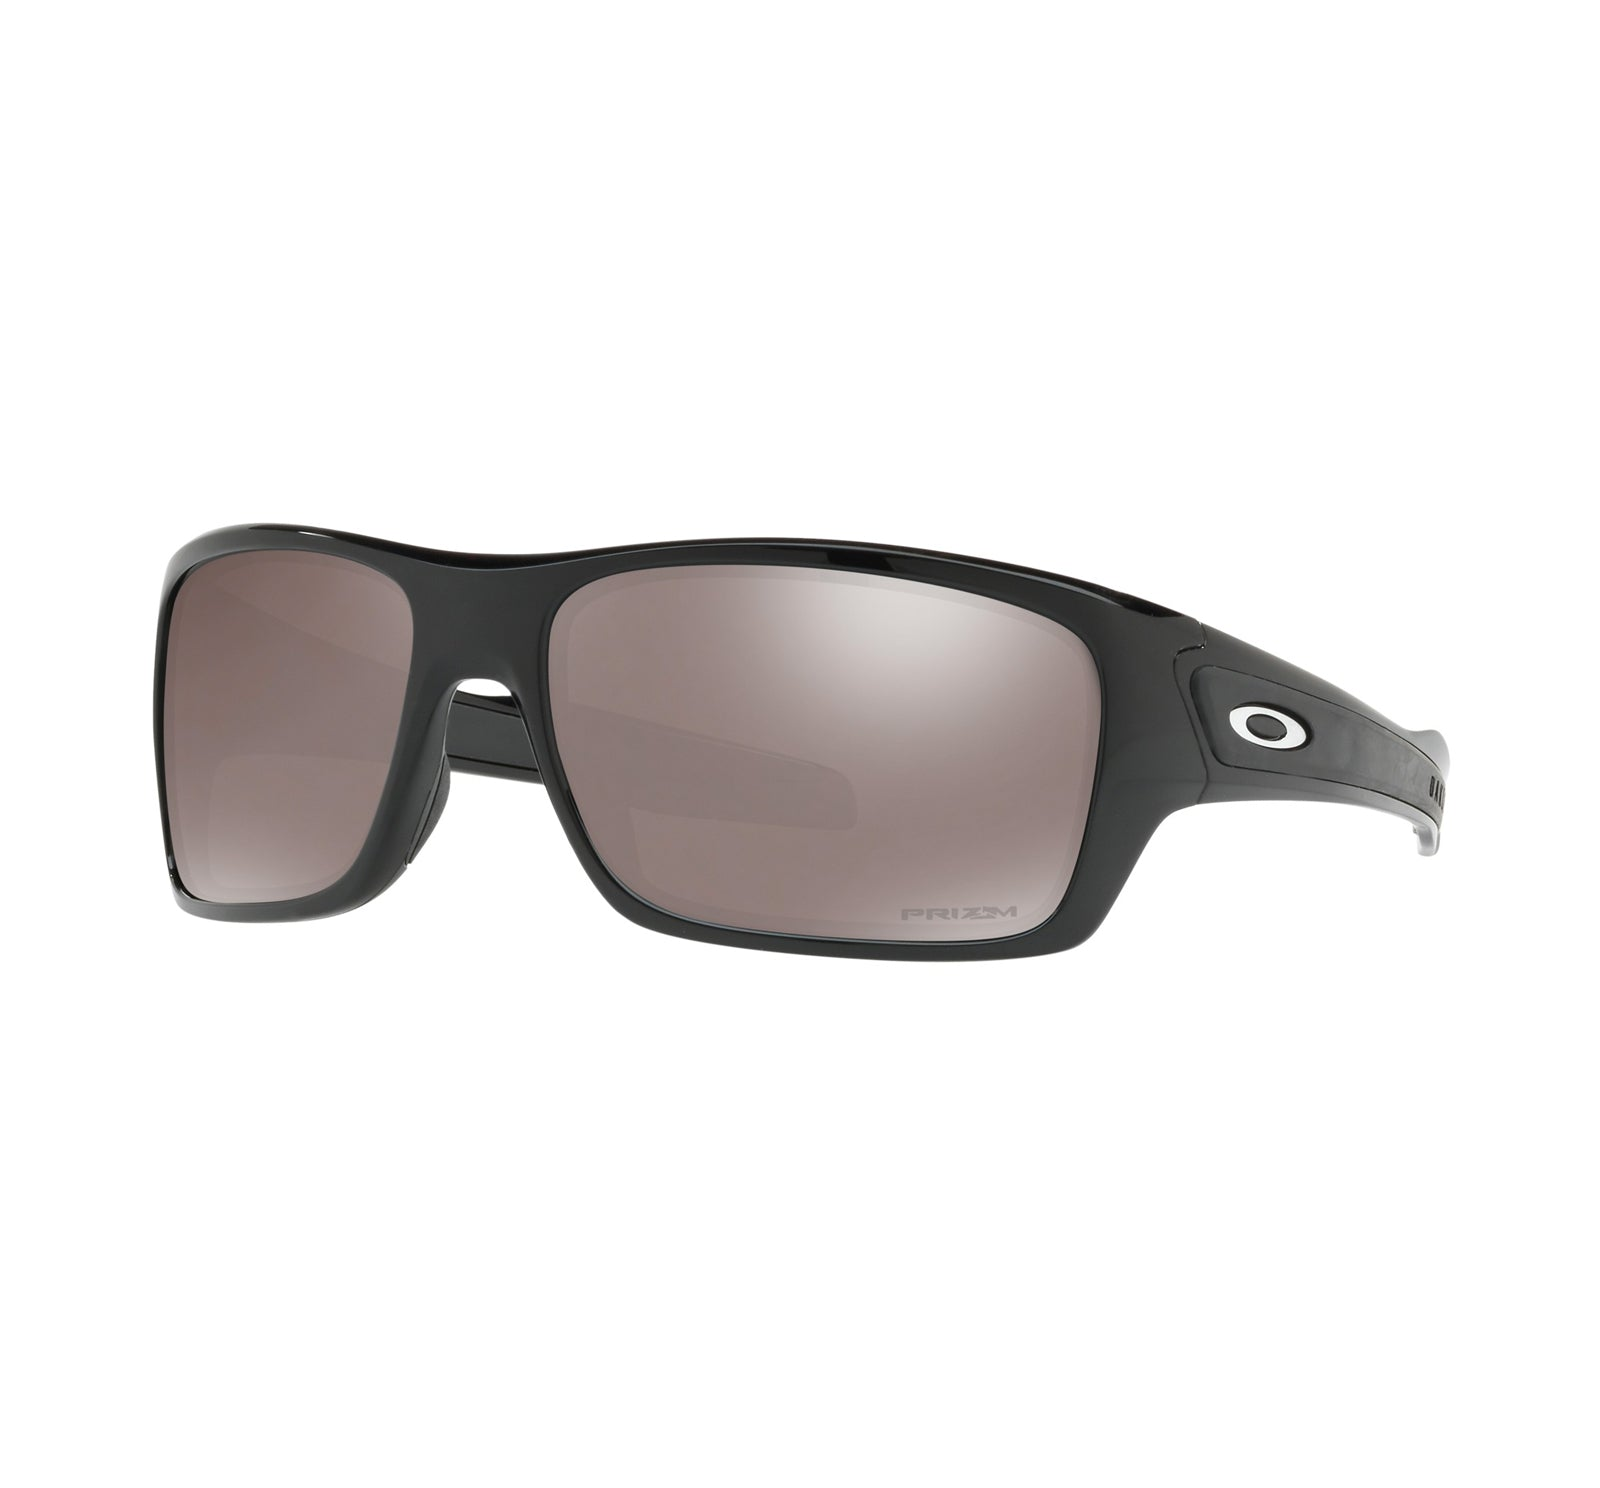 28da85efcbc Oakley Turbine Men s Sunglasses - Polished Black Frame Prizm Black Pol -  Surf Station Store